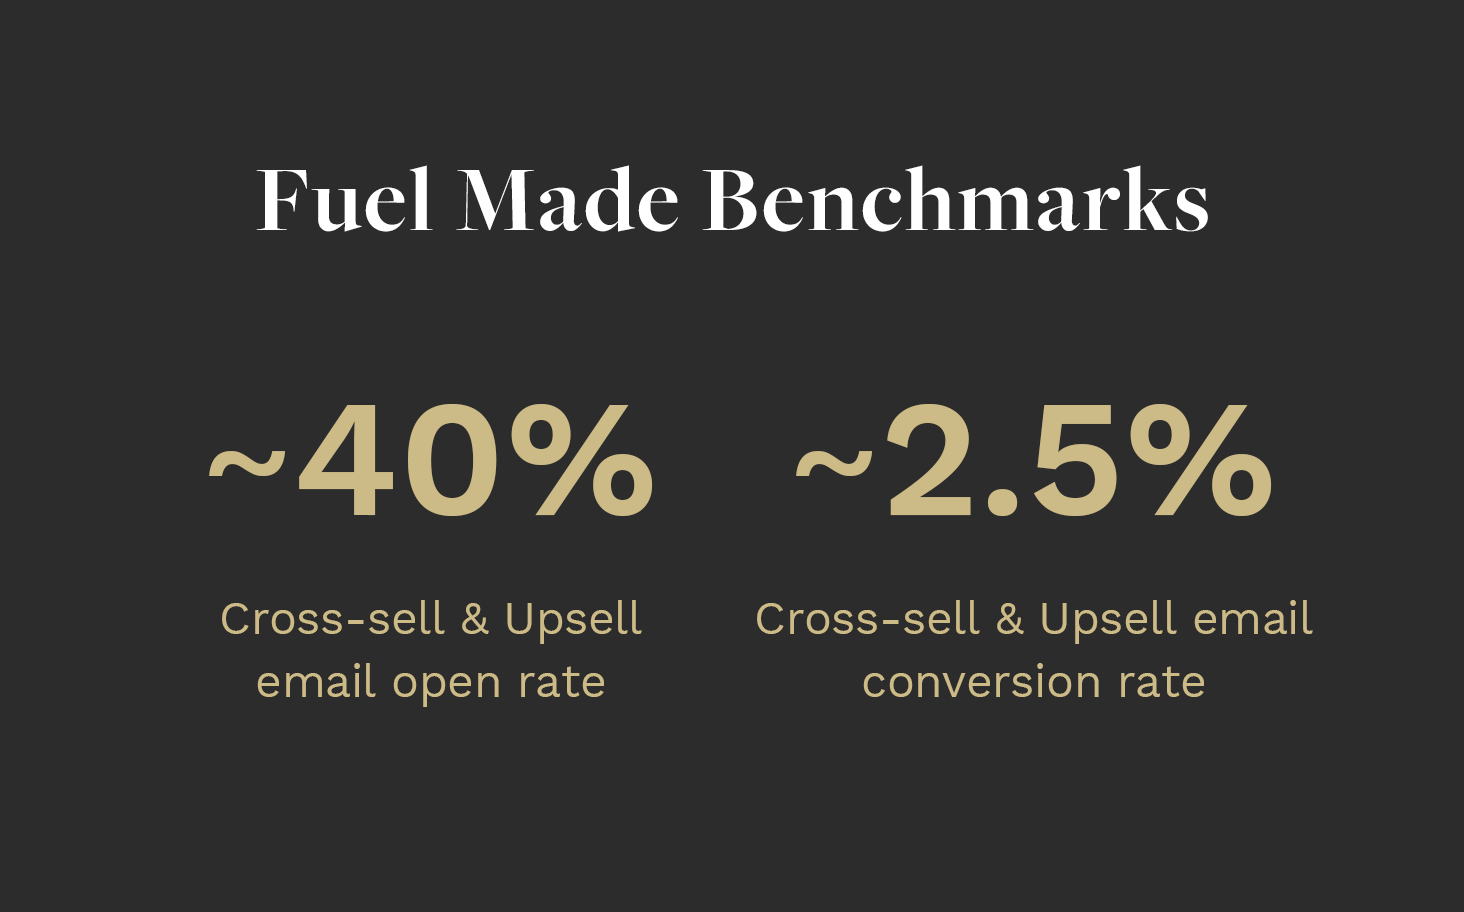 Upsell and Cross-sell Benchmarks